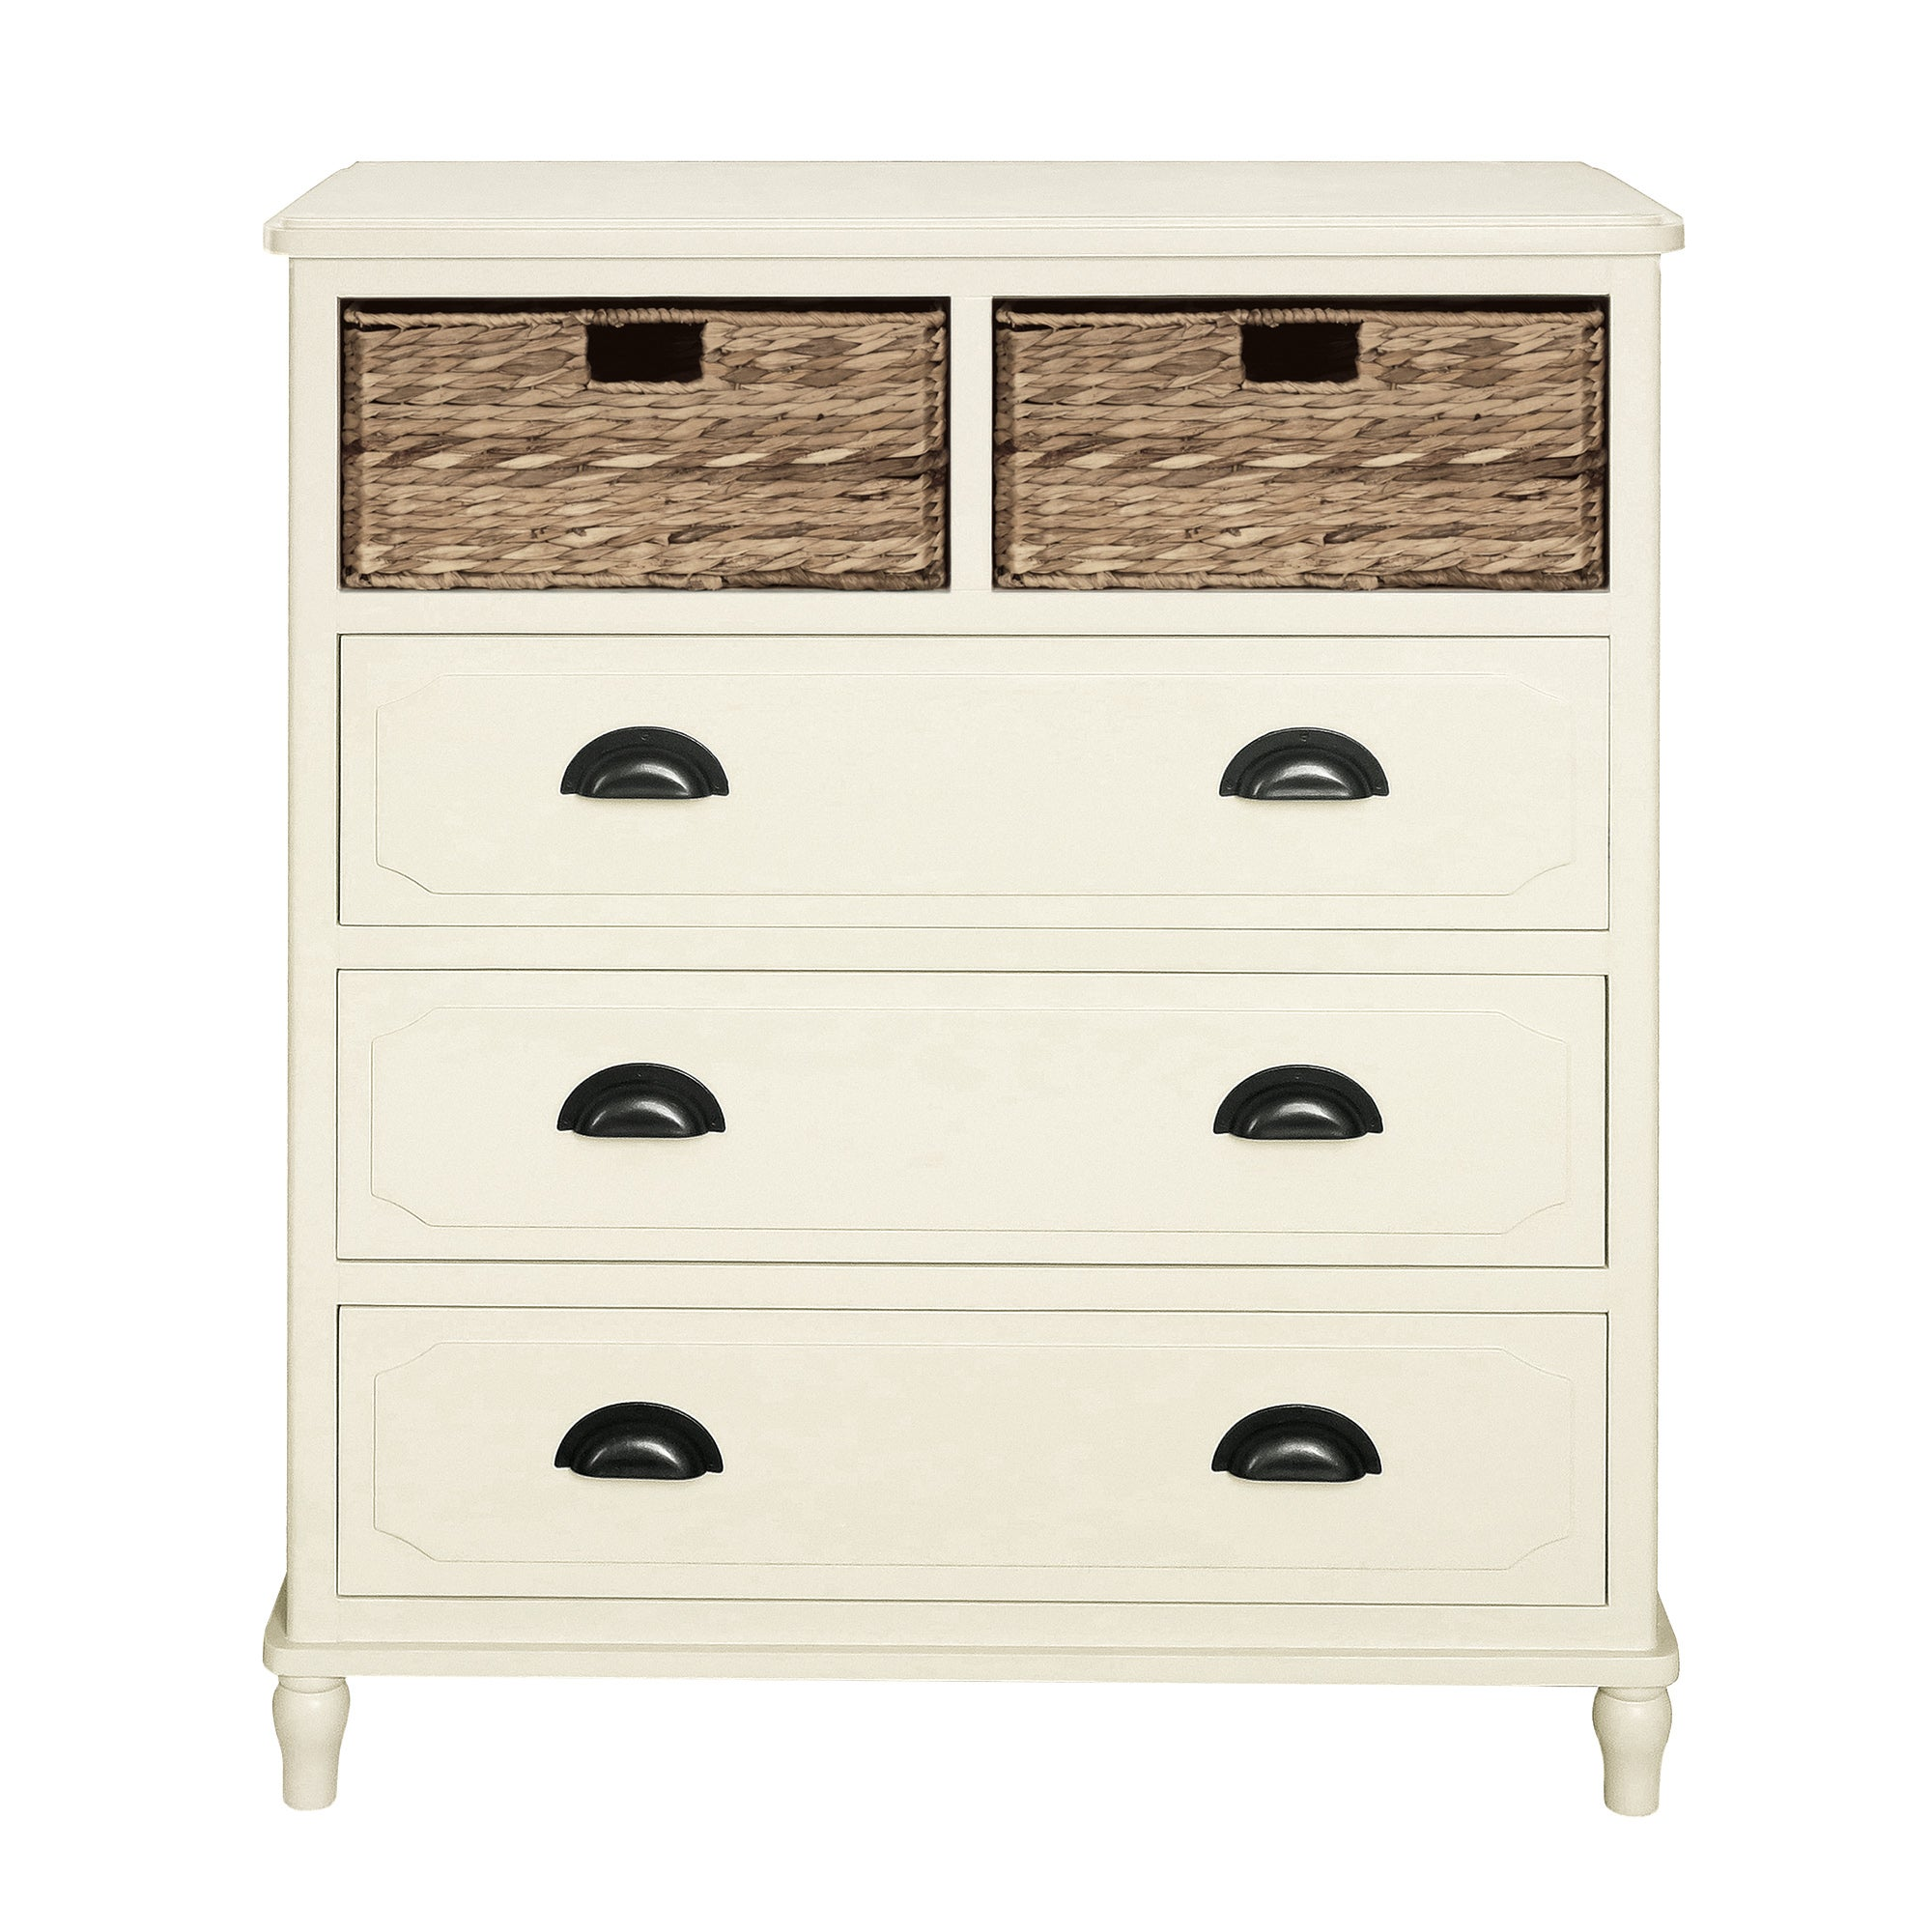 buy cheap wicker chest of drawers compare furniture. Black Bedroom Furniture Sets. Home Design Ideas